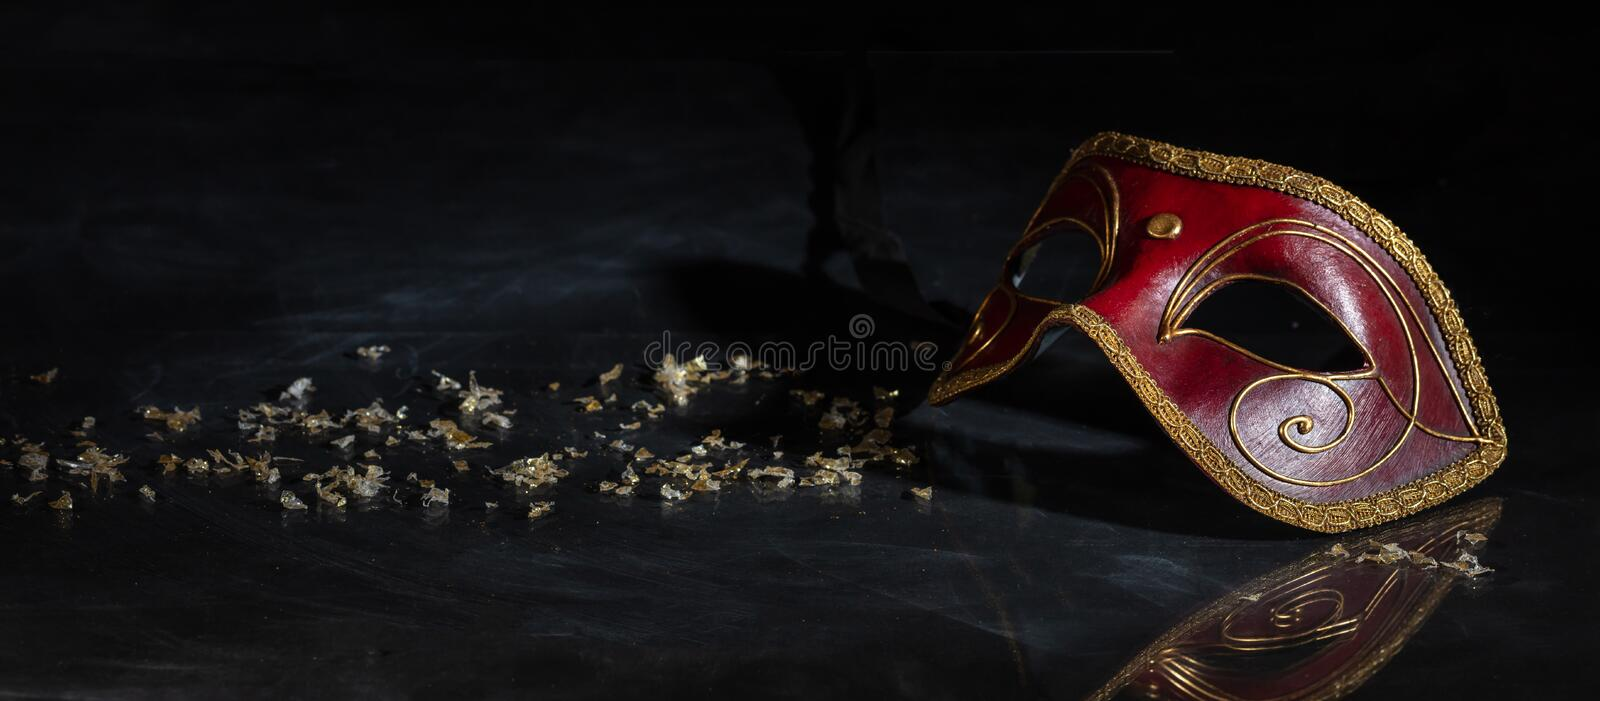 Carnival mask on black background, reflections, banner. Carnival time. Venetian mask red and gold color on black background, reflections, banner royalty free stock photos